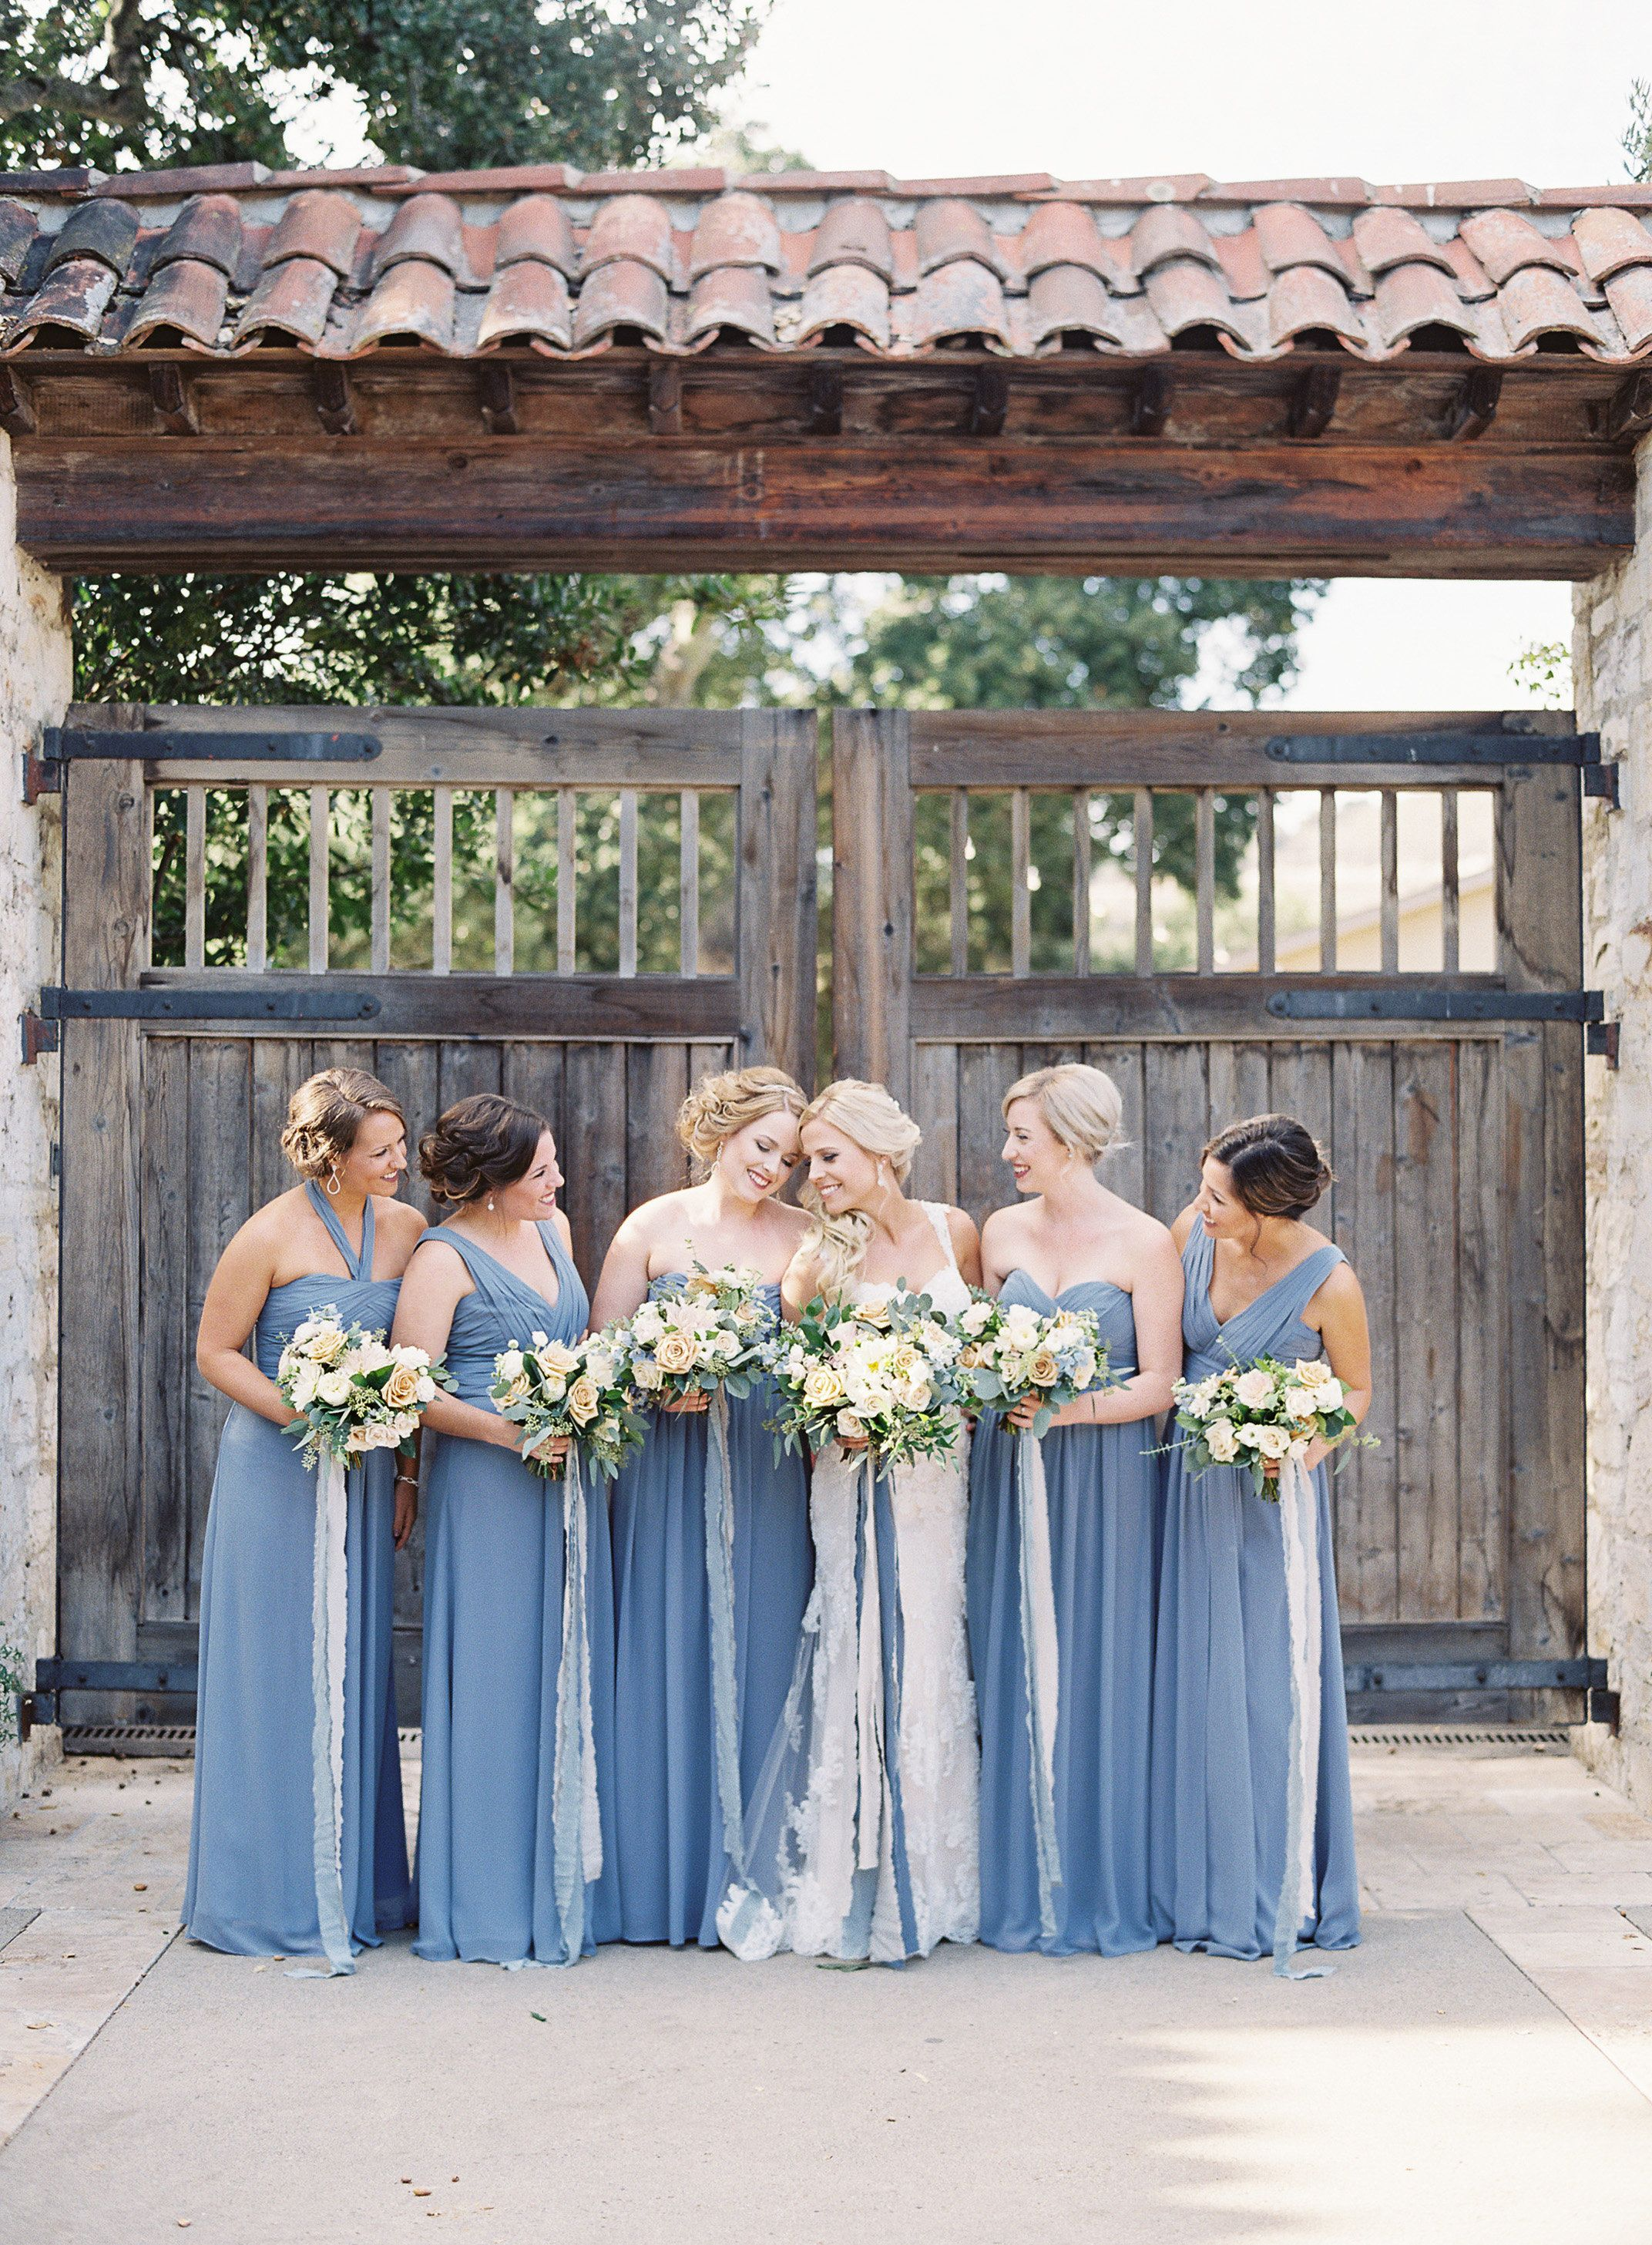 Beautiful vow to be chic gowns in french blue rent for 99 beautiful vow to be chic gowns in french blue rent for 99 ombrellifo Images